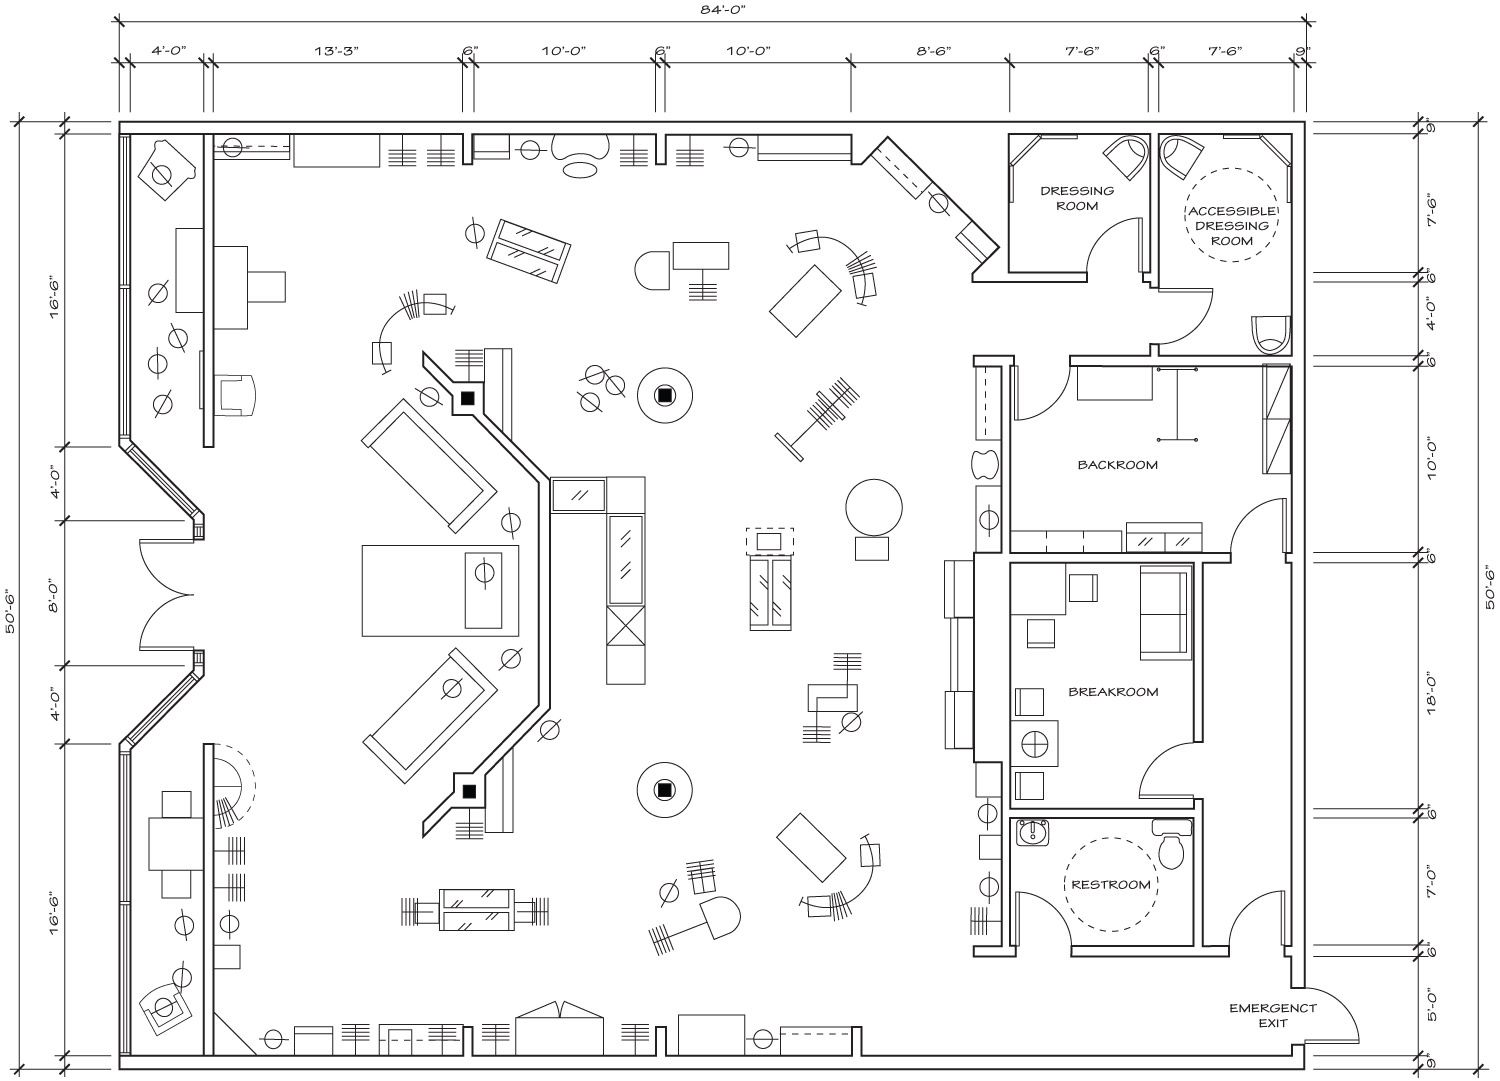 Retail Floor Plan Google Search Retail Planogram